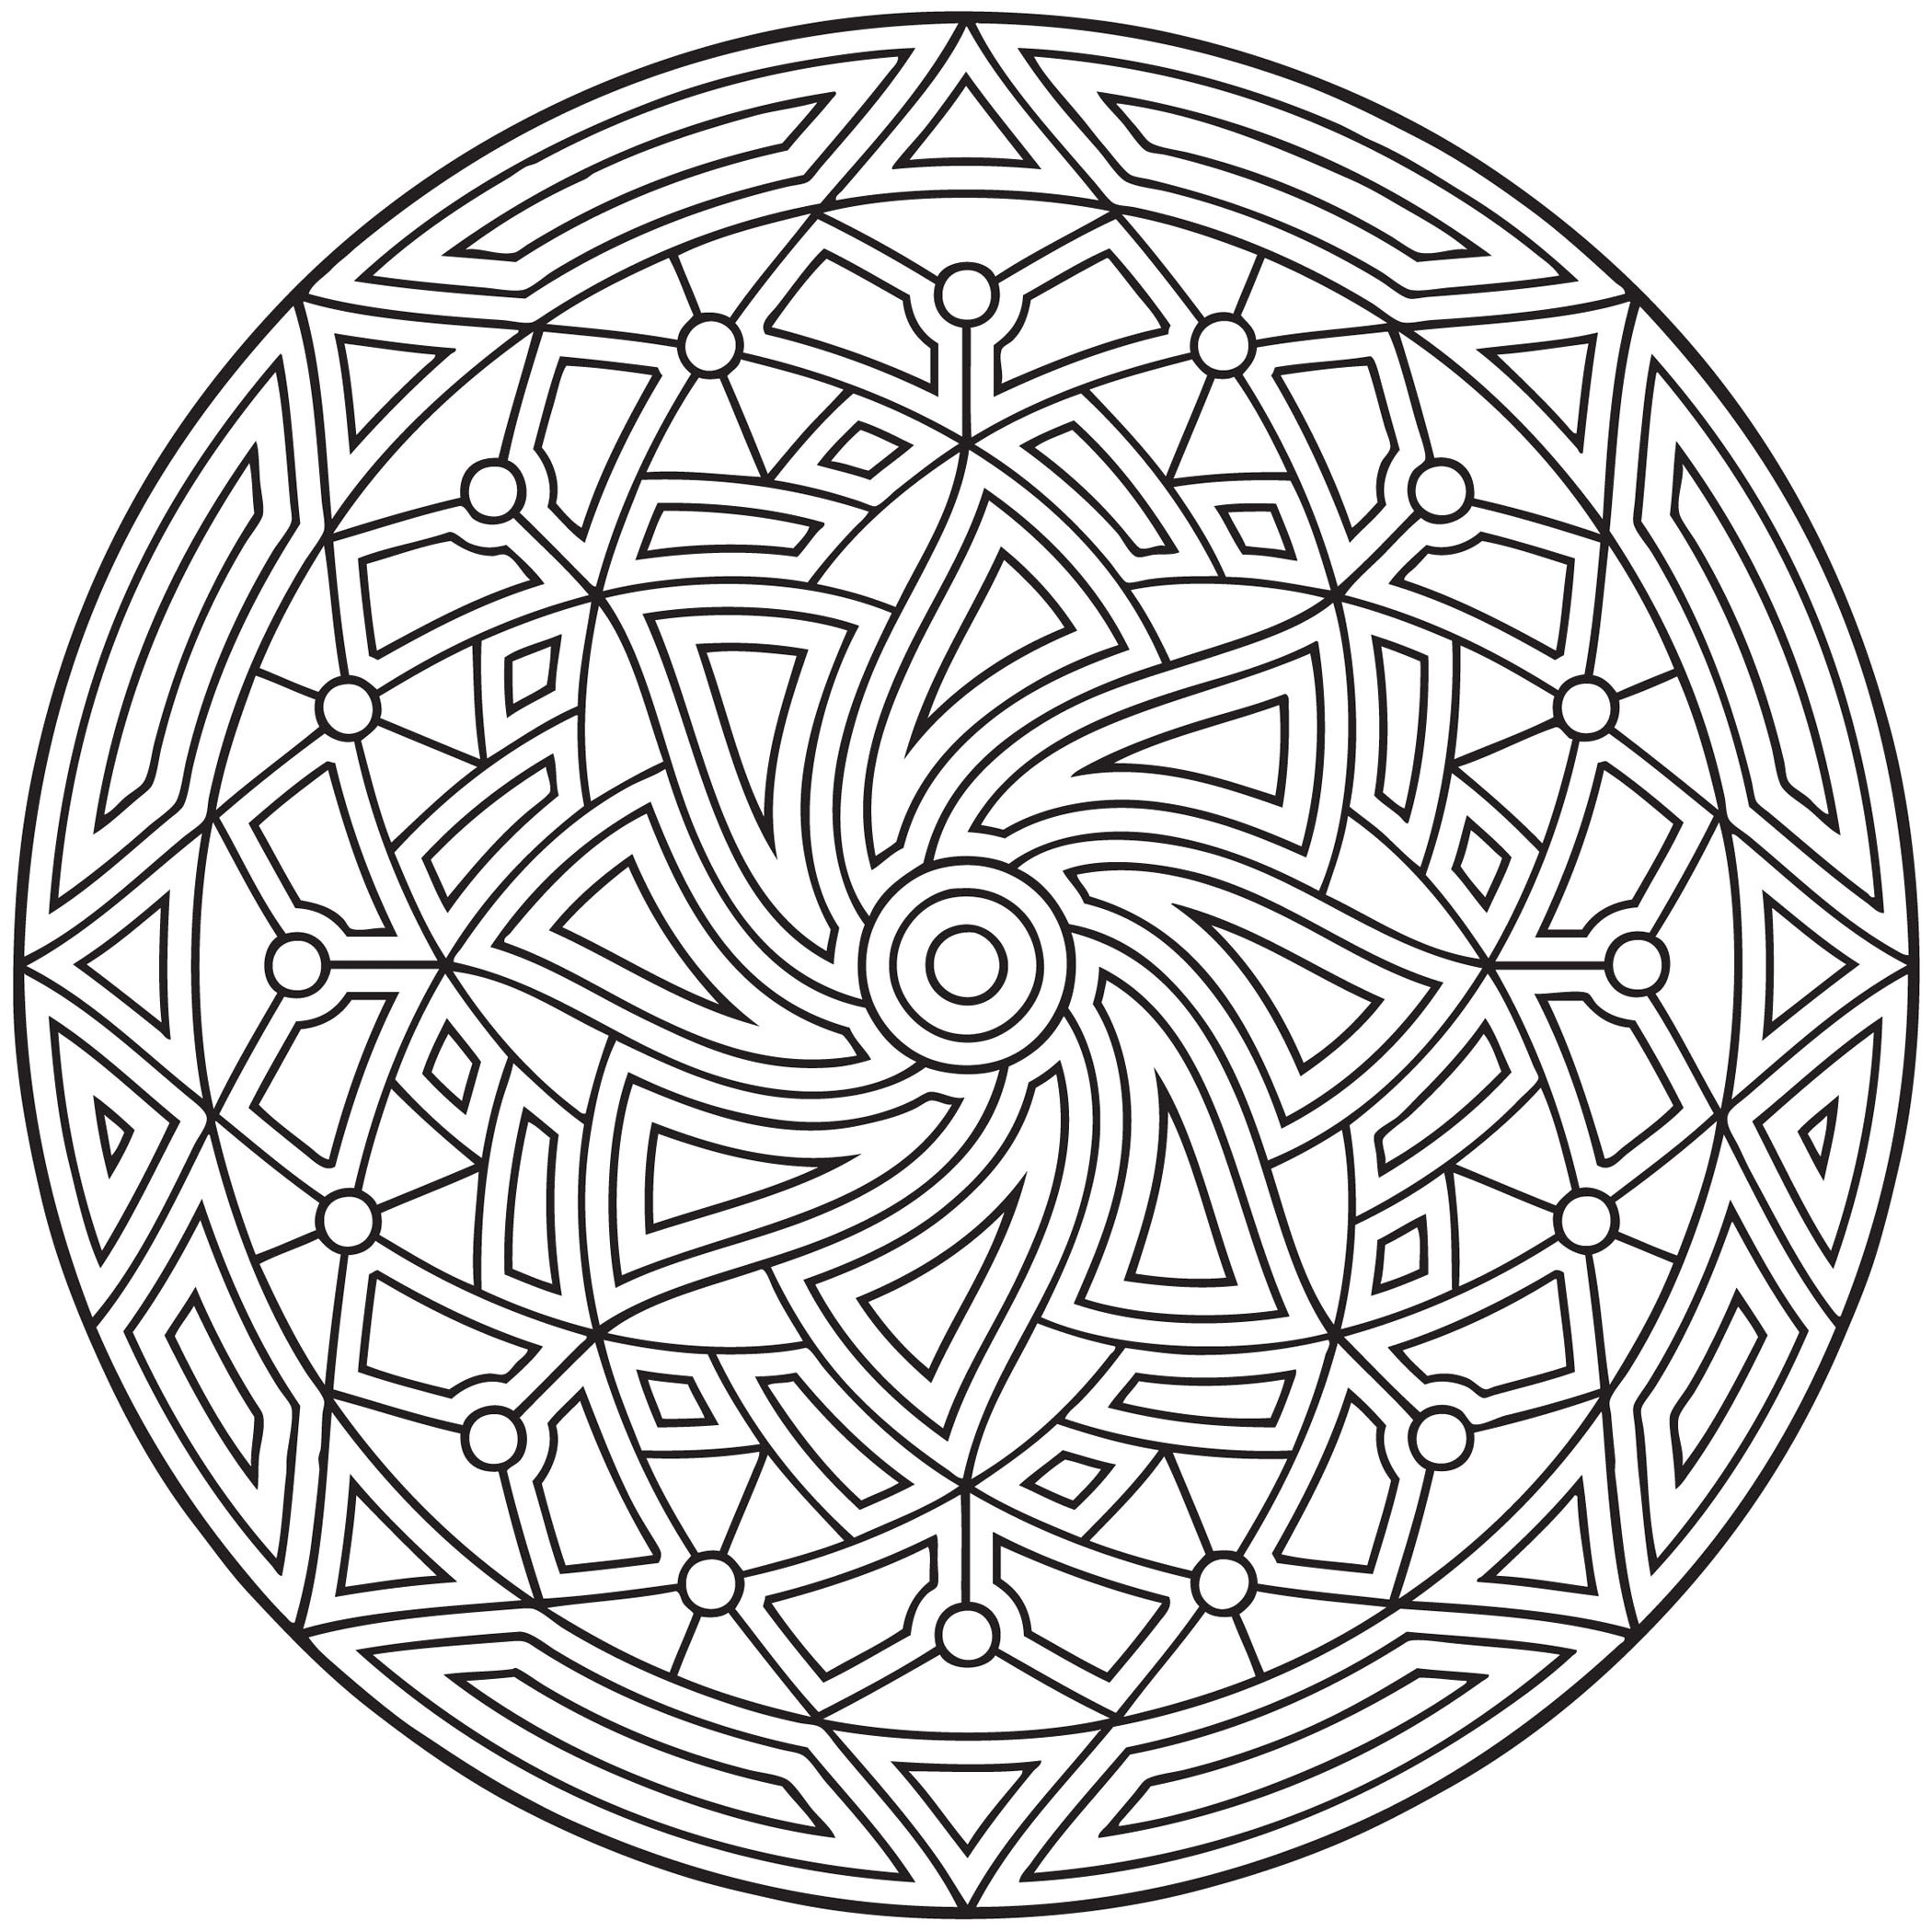 coloring pages geometric shapes - photo#19